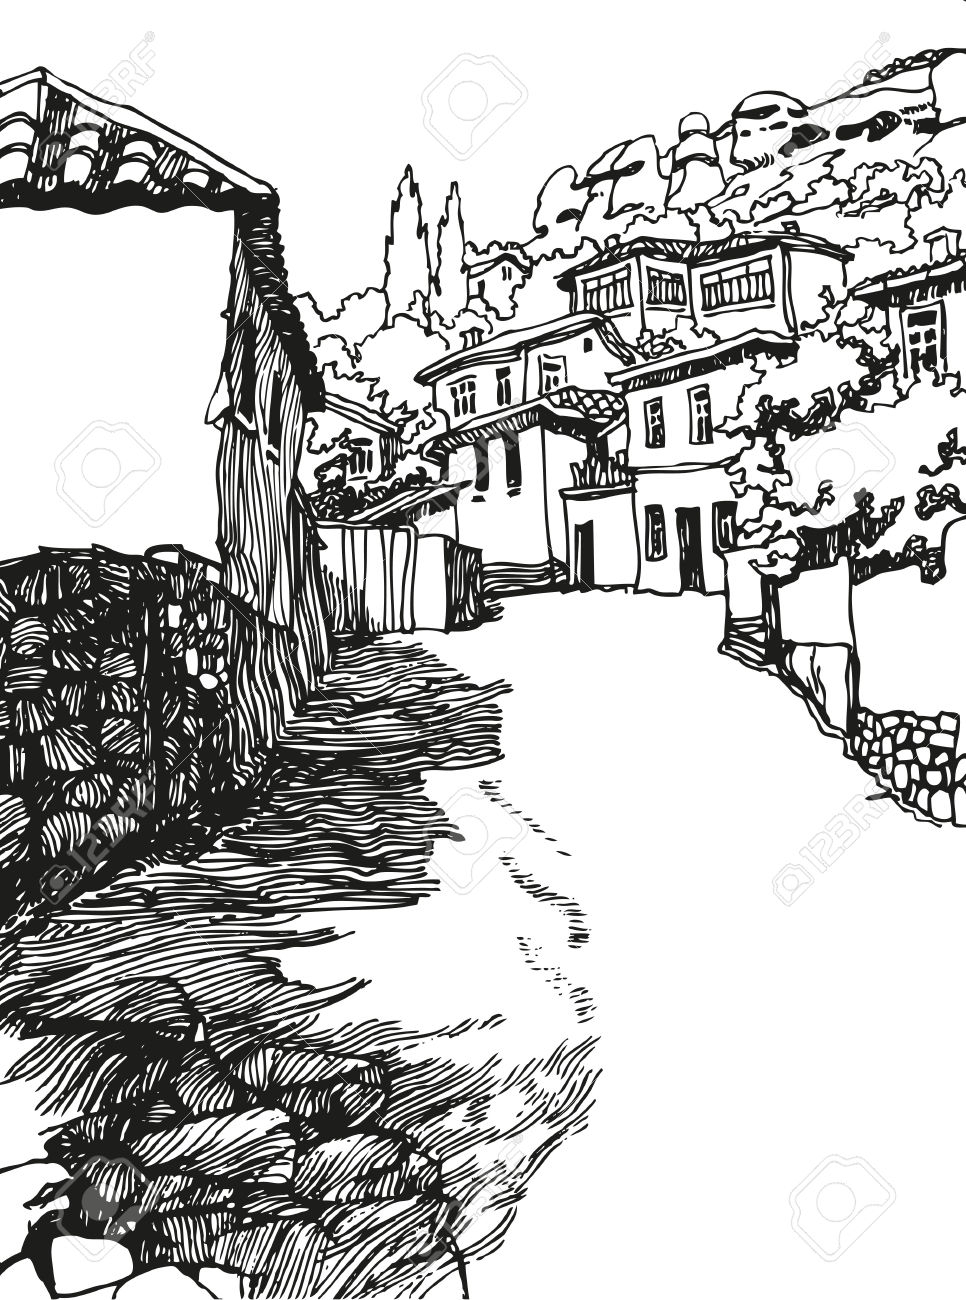 966x1300 Black And White Landscape Drawing Beautiful Village Drawing Black